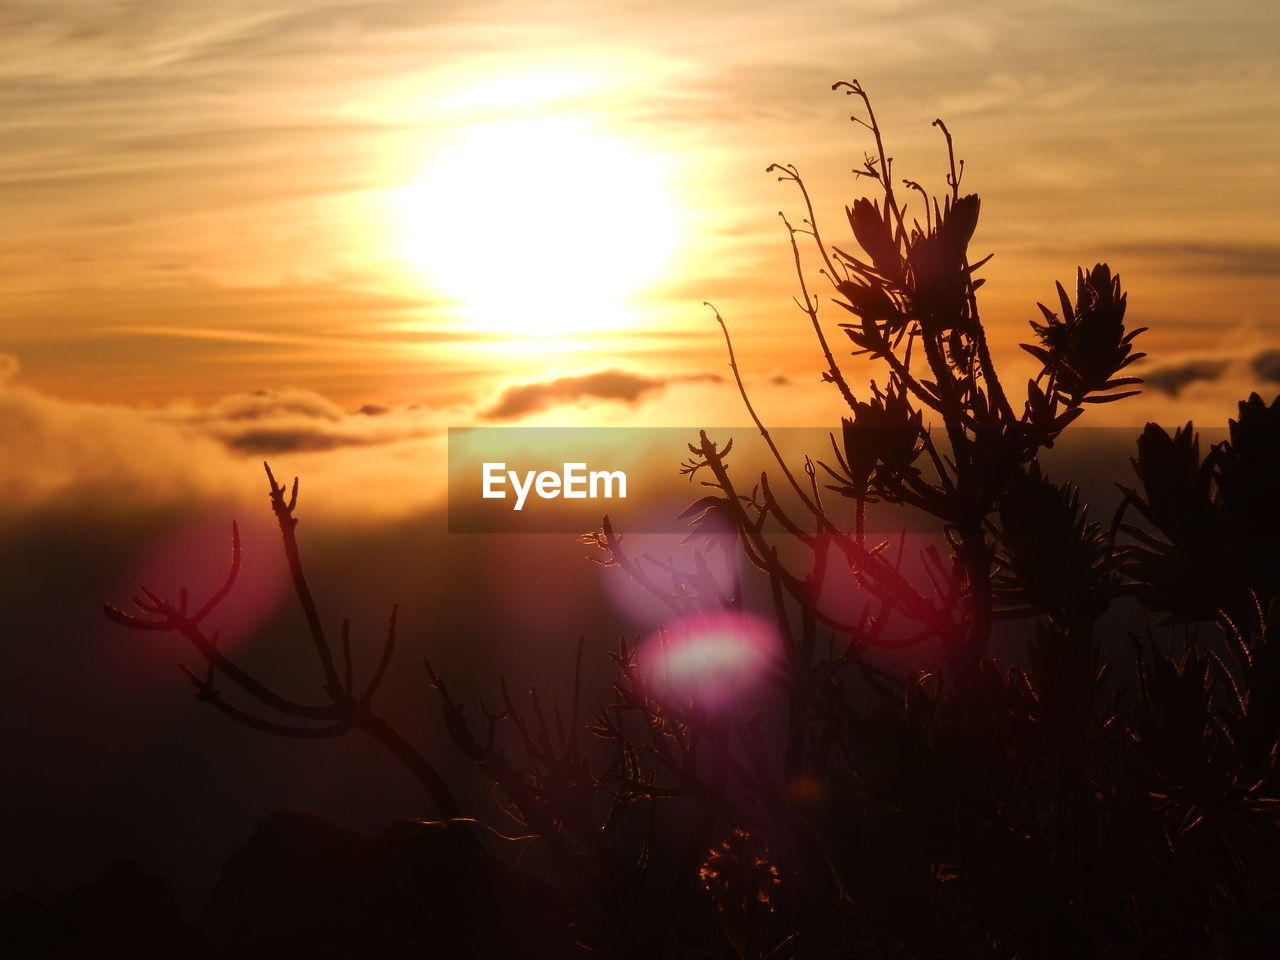 sunset, sky, beauty in nature, plant, sun, cloud - sky, growth, scenics - nature, nature, tranquility, orange color, flower, flowering plant, no people, silhouette, sunlight, close-up, fragility, freshness, vulnerability, lens flare, outdoors, flower head, stalk